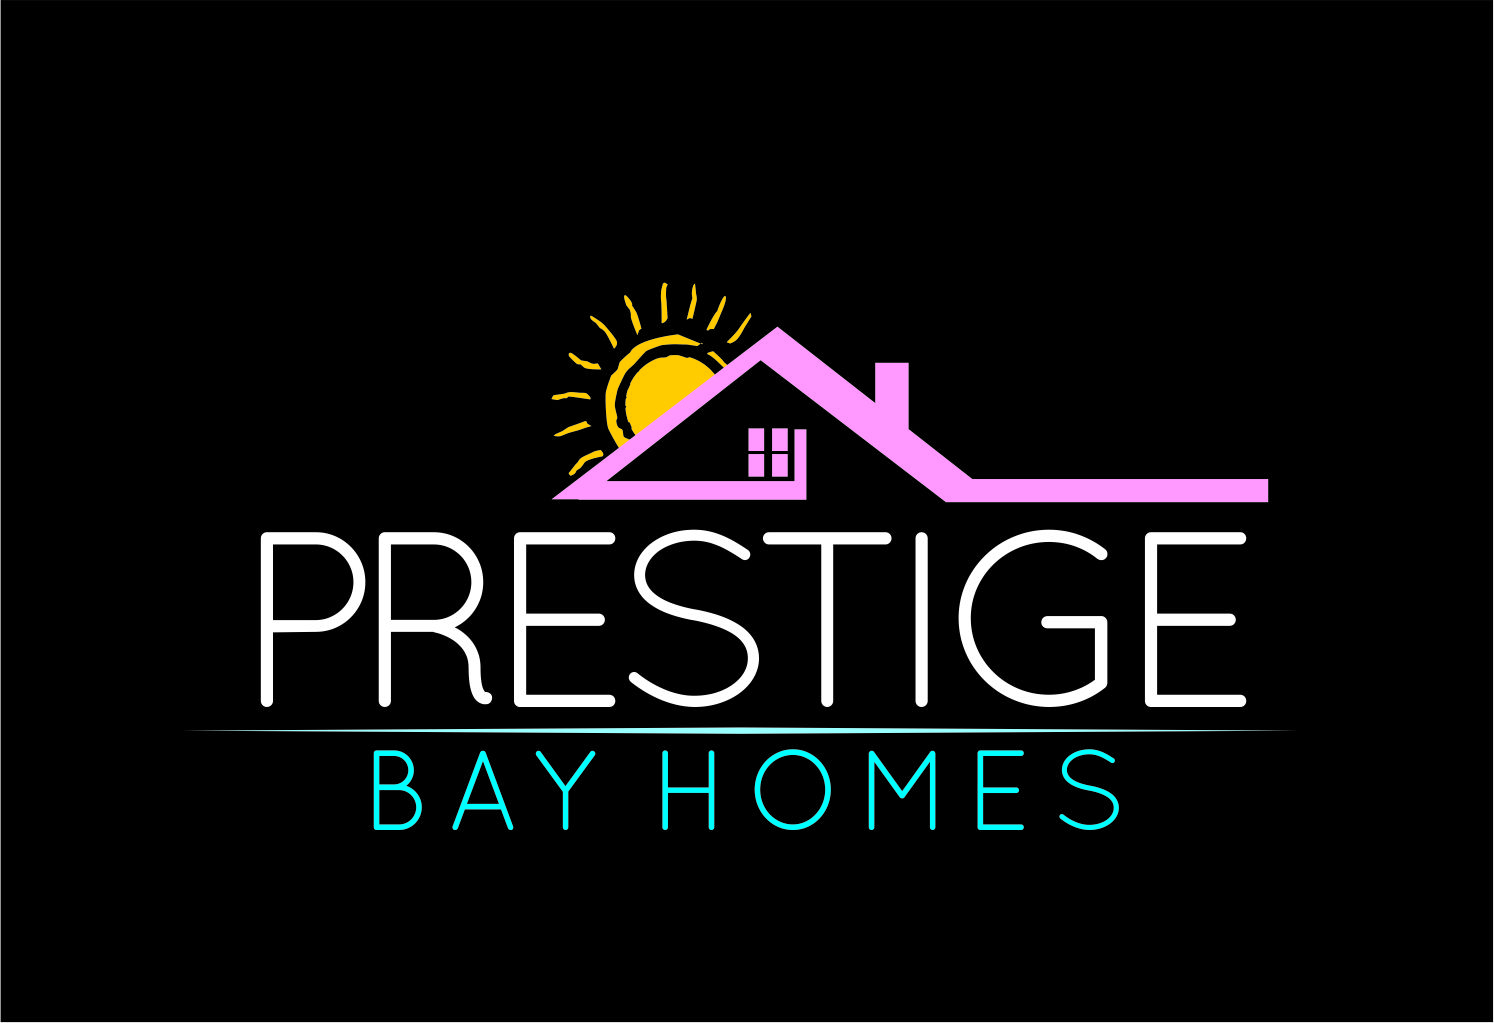 Logo Design by Private User - Entry No. 103 in the Logo Design Contest Imaginative Logo Design for Prestige Bay Homes.